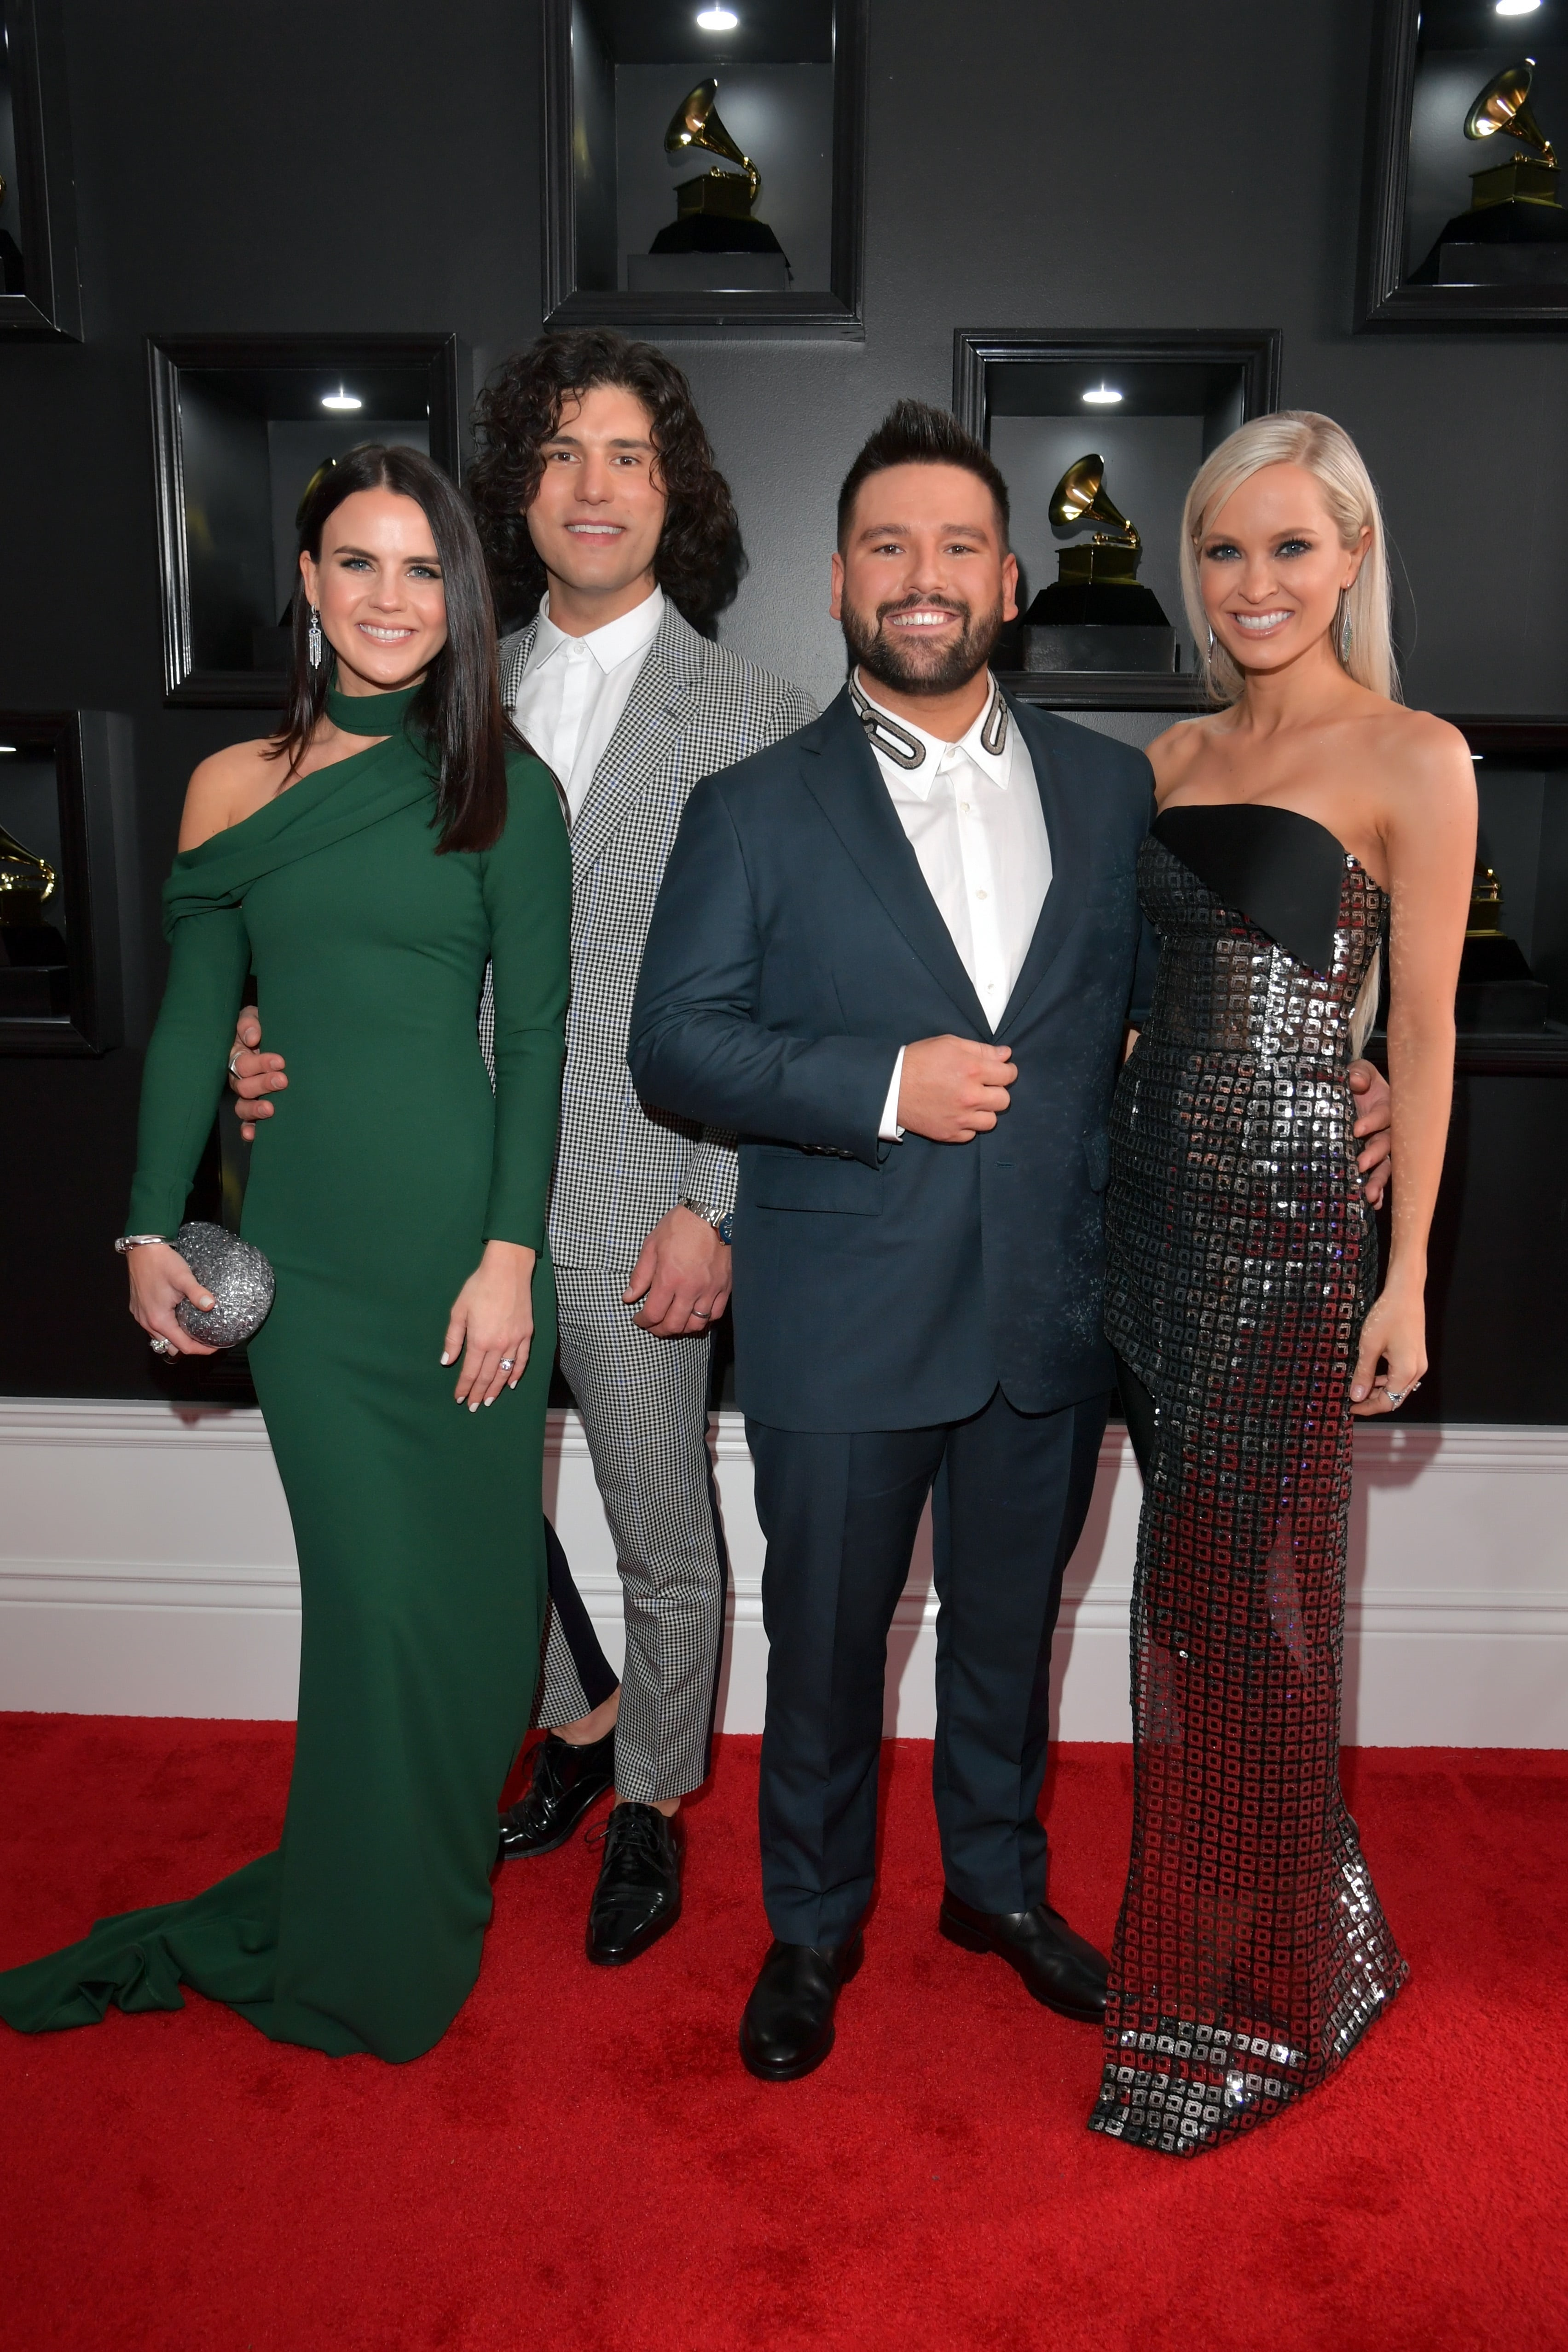 LOS ANGELES, CA - FEBRUARY 10: (L-R) Abby Law, Dan Smyers and Shay Mooney of Dan + Shay, and Hannah Mooney attend the 61st Annual GRAMMY Awards at Staples Center on February 10, 2019 in Los Angeles, California. (Photo by Lester Cohen/Getty Images for The Recording Academy)